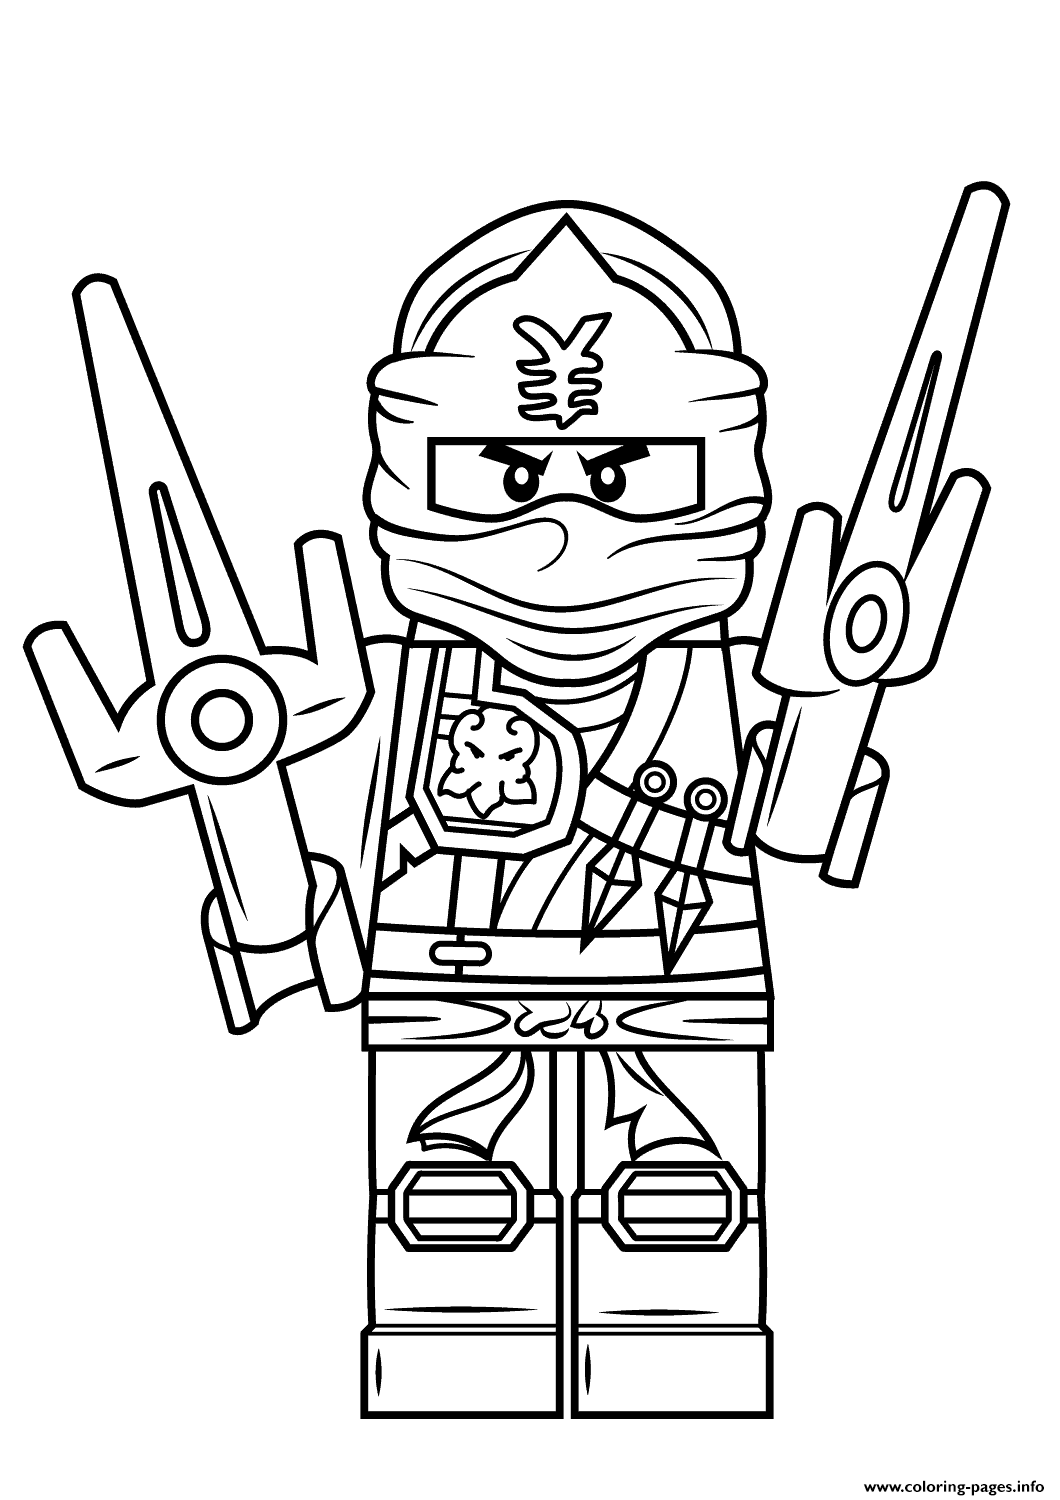 Fortnite Ninja Coloring Pages Fortnite Aimbot Website